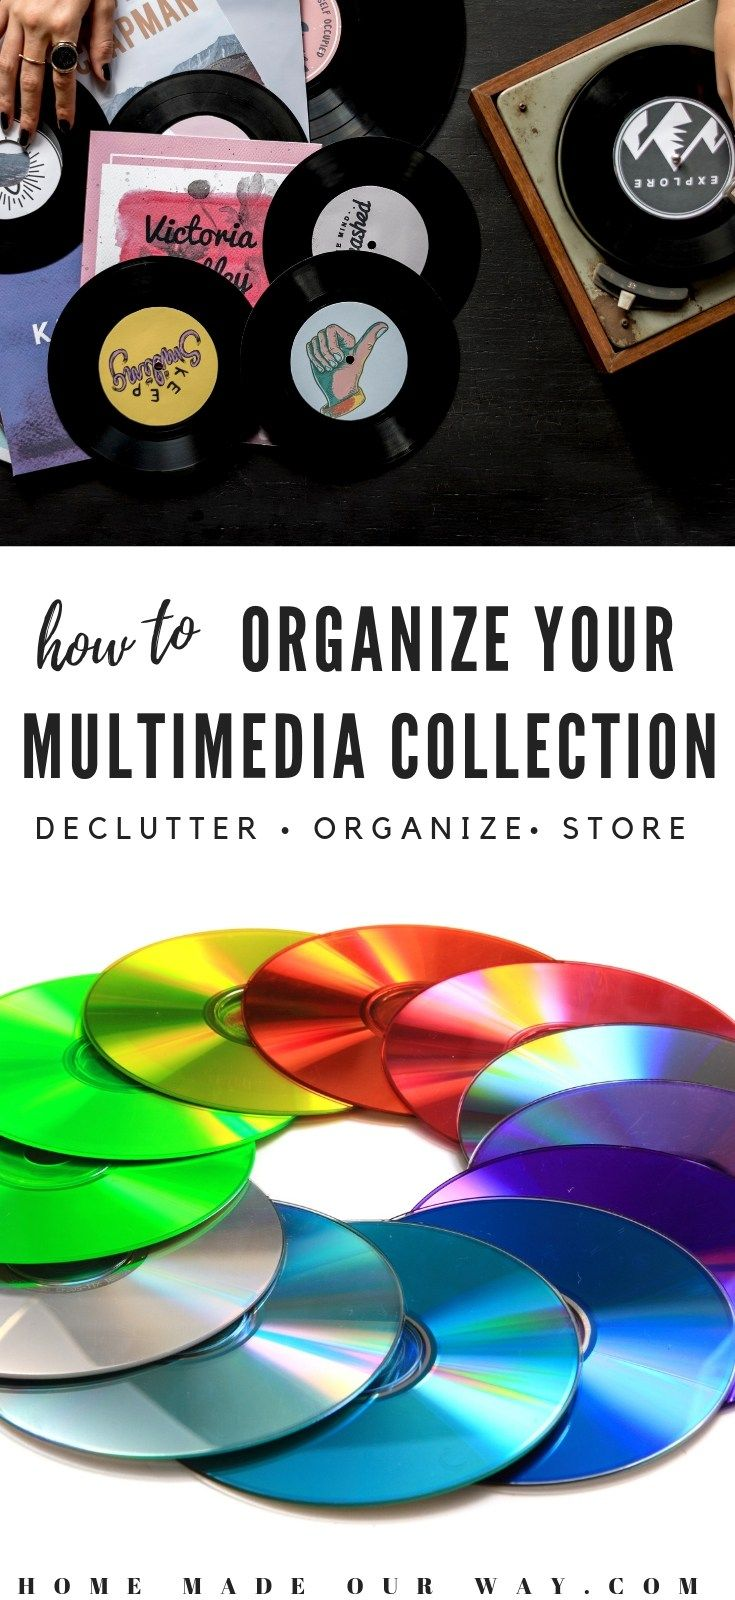 Multimedia Organization: How to organize your DVDs, CDs, etc